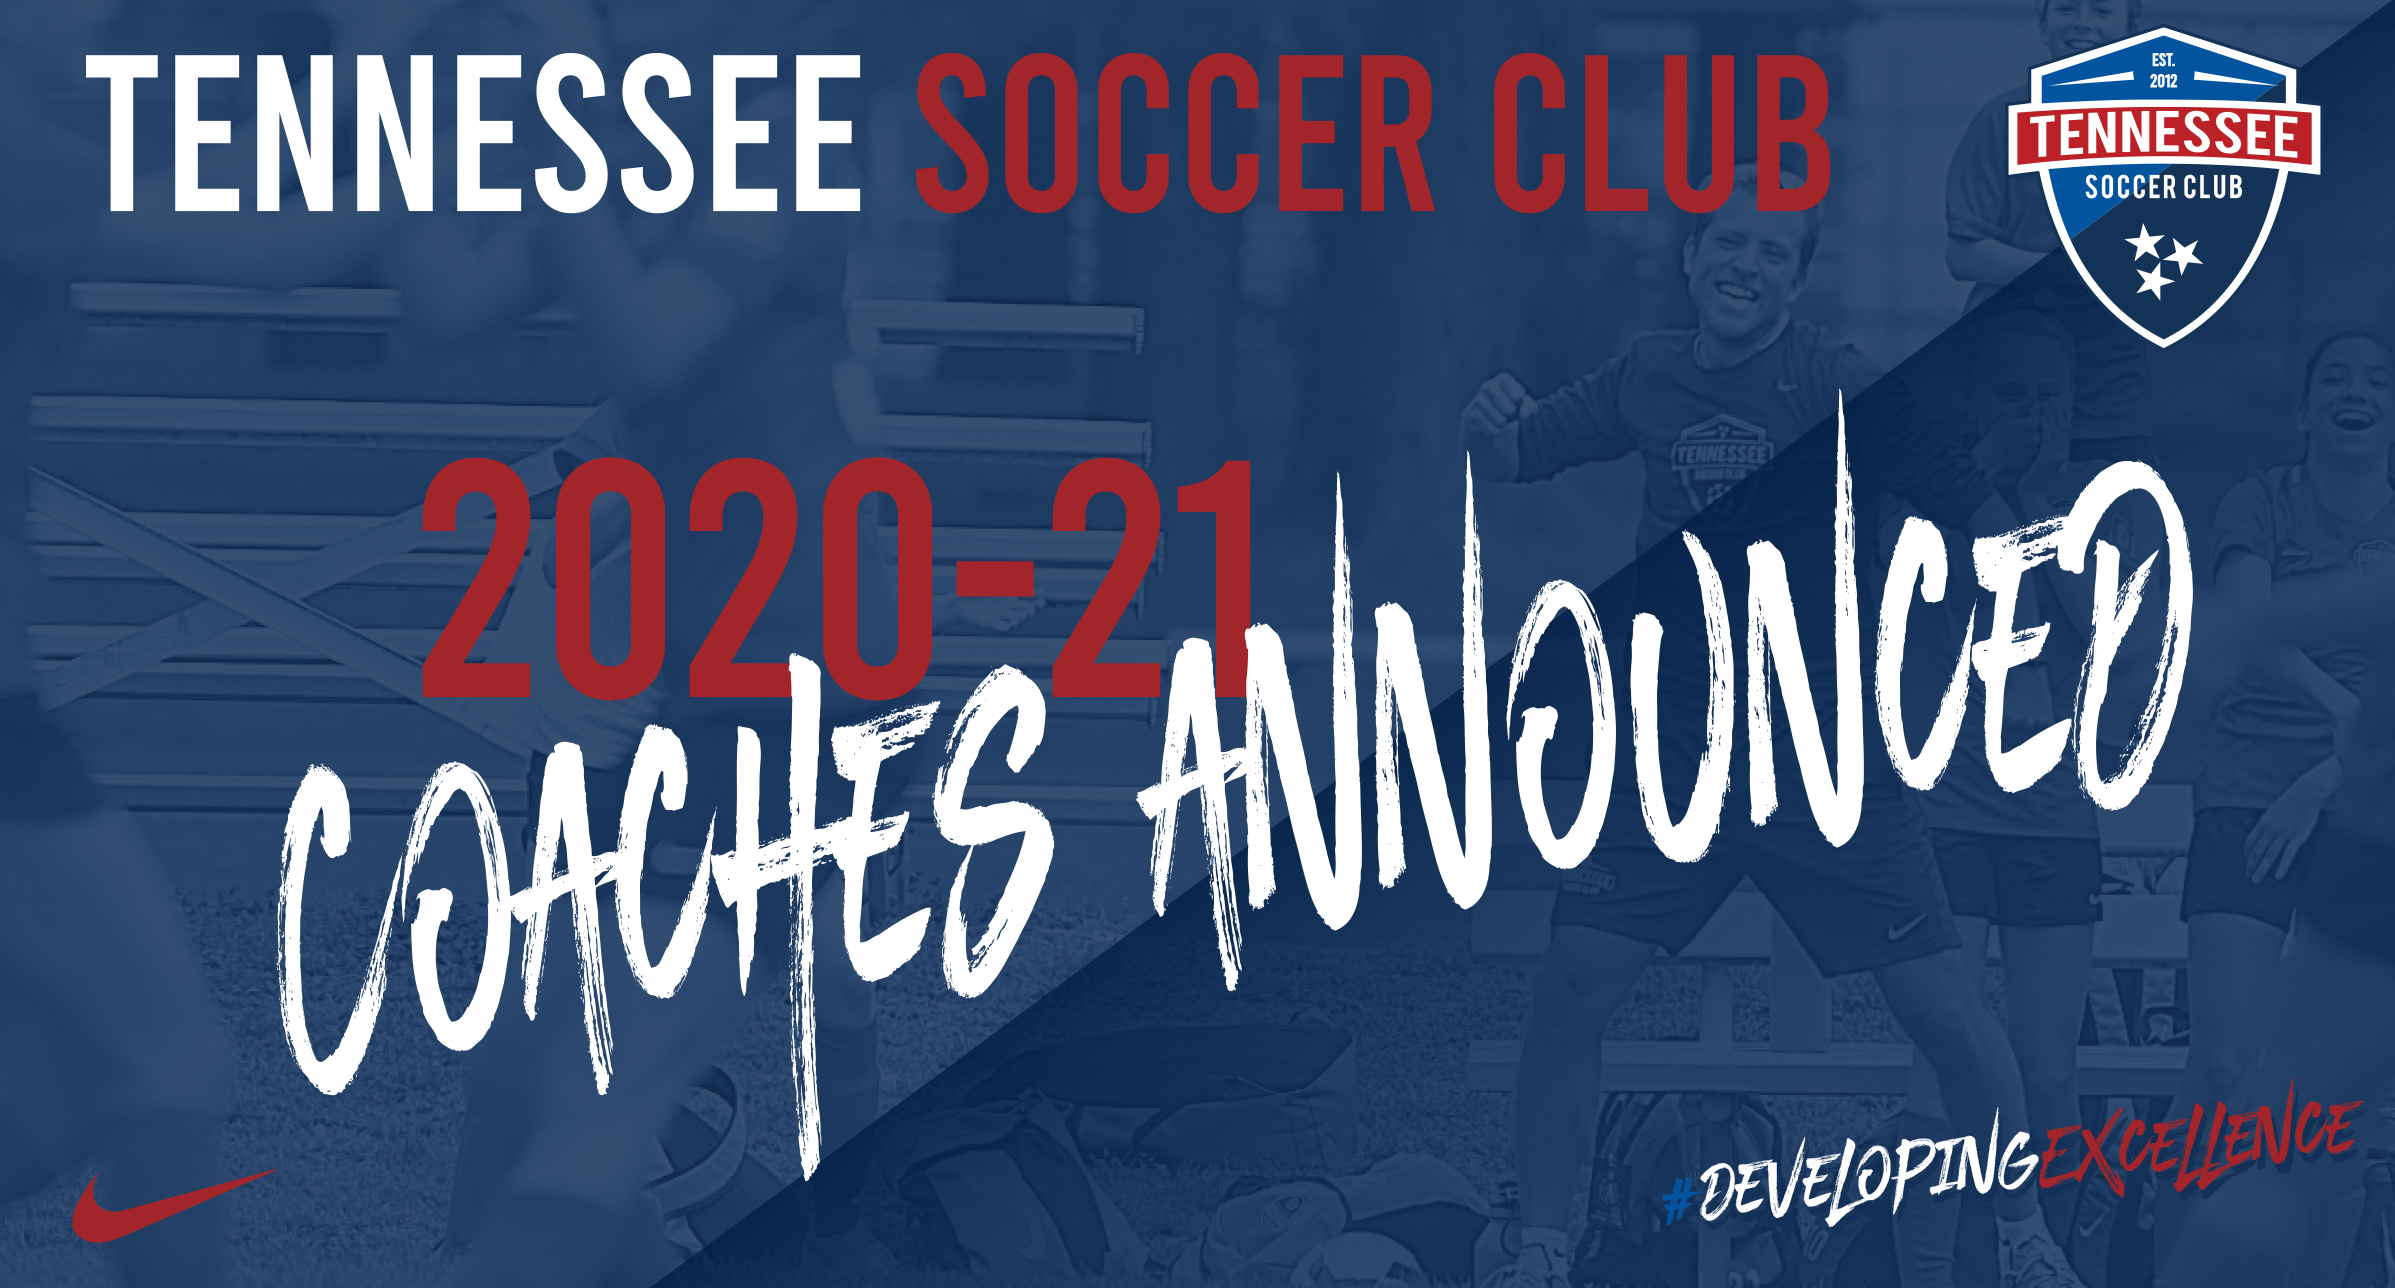 TSC Announces 2020-21 Coaching Staff and Team Assignments